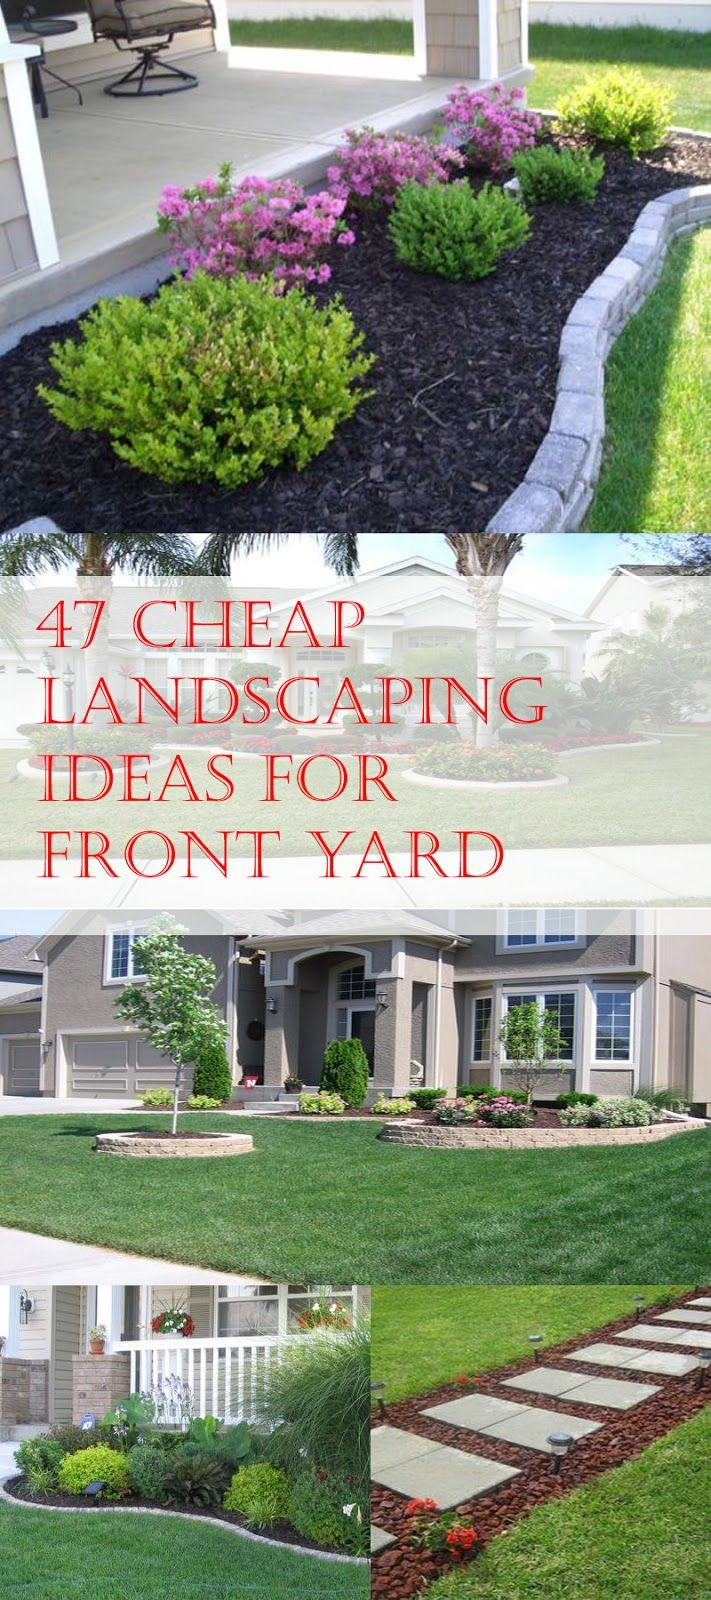 47 Cheap Landscaping Ideas For Front Yard | Cheap landscaping ideas on country front yard design, house front yard design, tuscan front yard design, prairie front yard design, home front yard design, modern front yard design, traditional front yard design, contemporary front yard design, florida front yard design, farmhouse front yard landscaping, mediterranean front yard design, low water front yard design, farmhouse front yard fencing, garden front yard design, farmhouse front yard landscape ideas, flat front yard design,